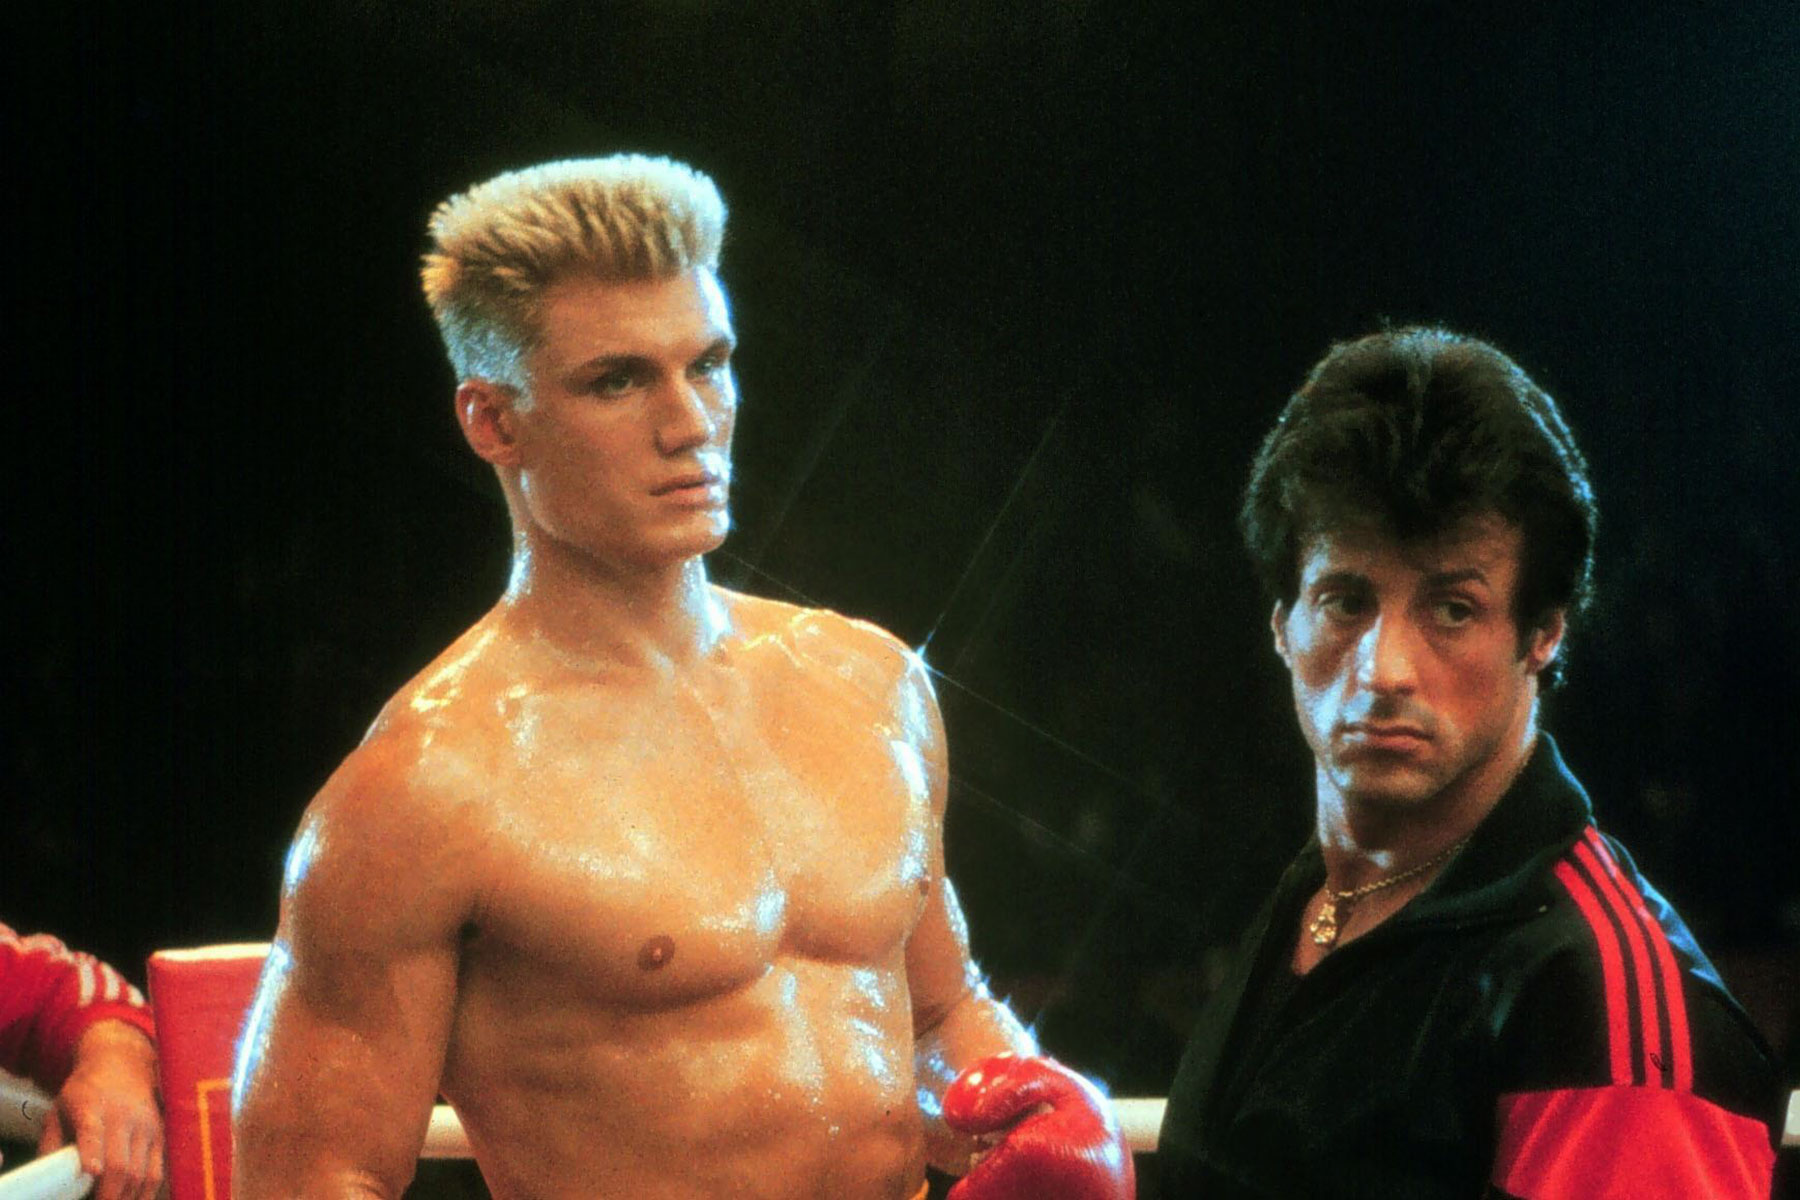 BEHIND THE SCENES ON ROCKY IV DIRECTOR'S CUT | ManlyMovie